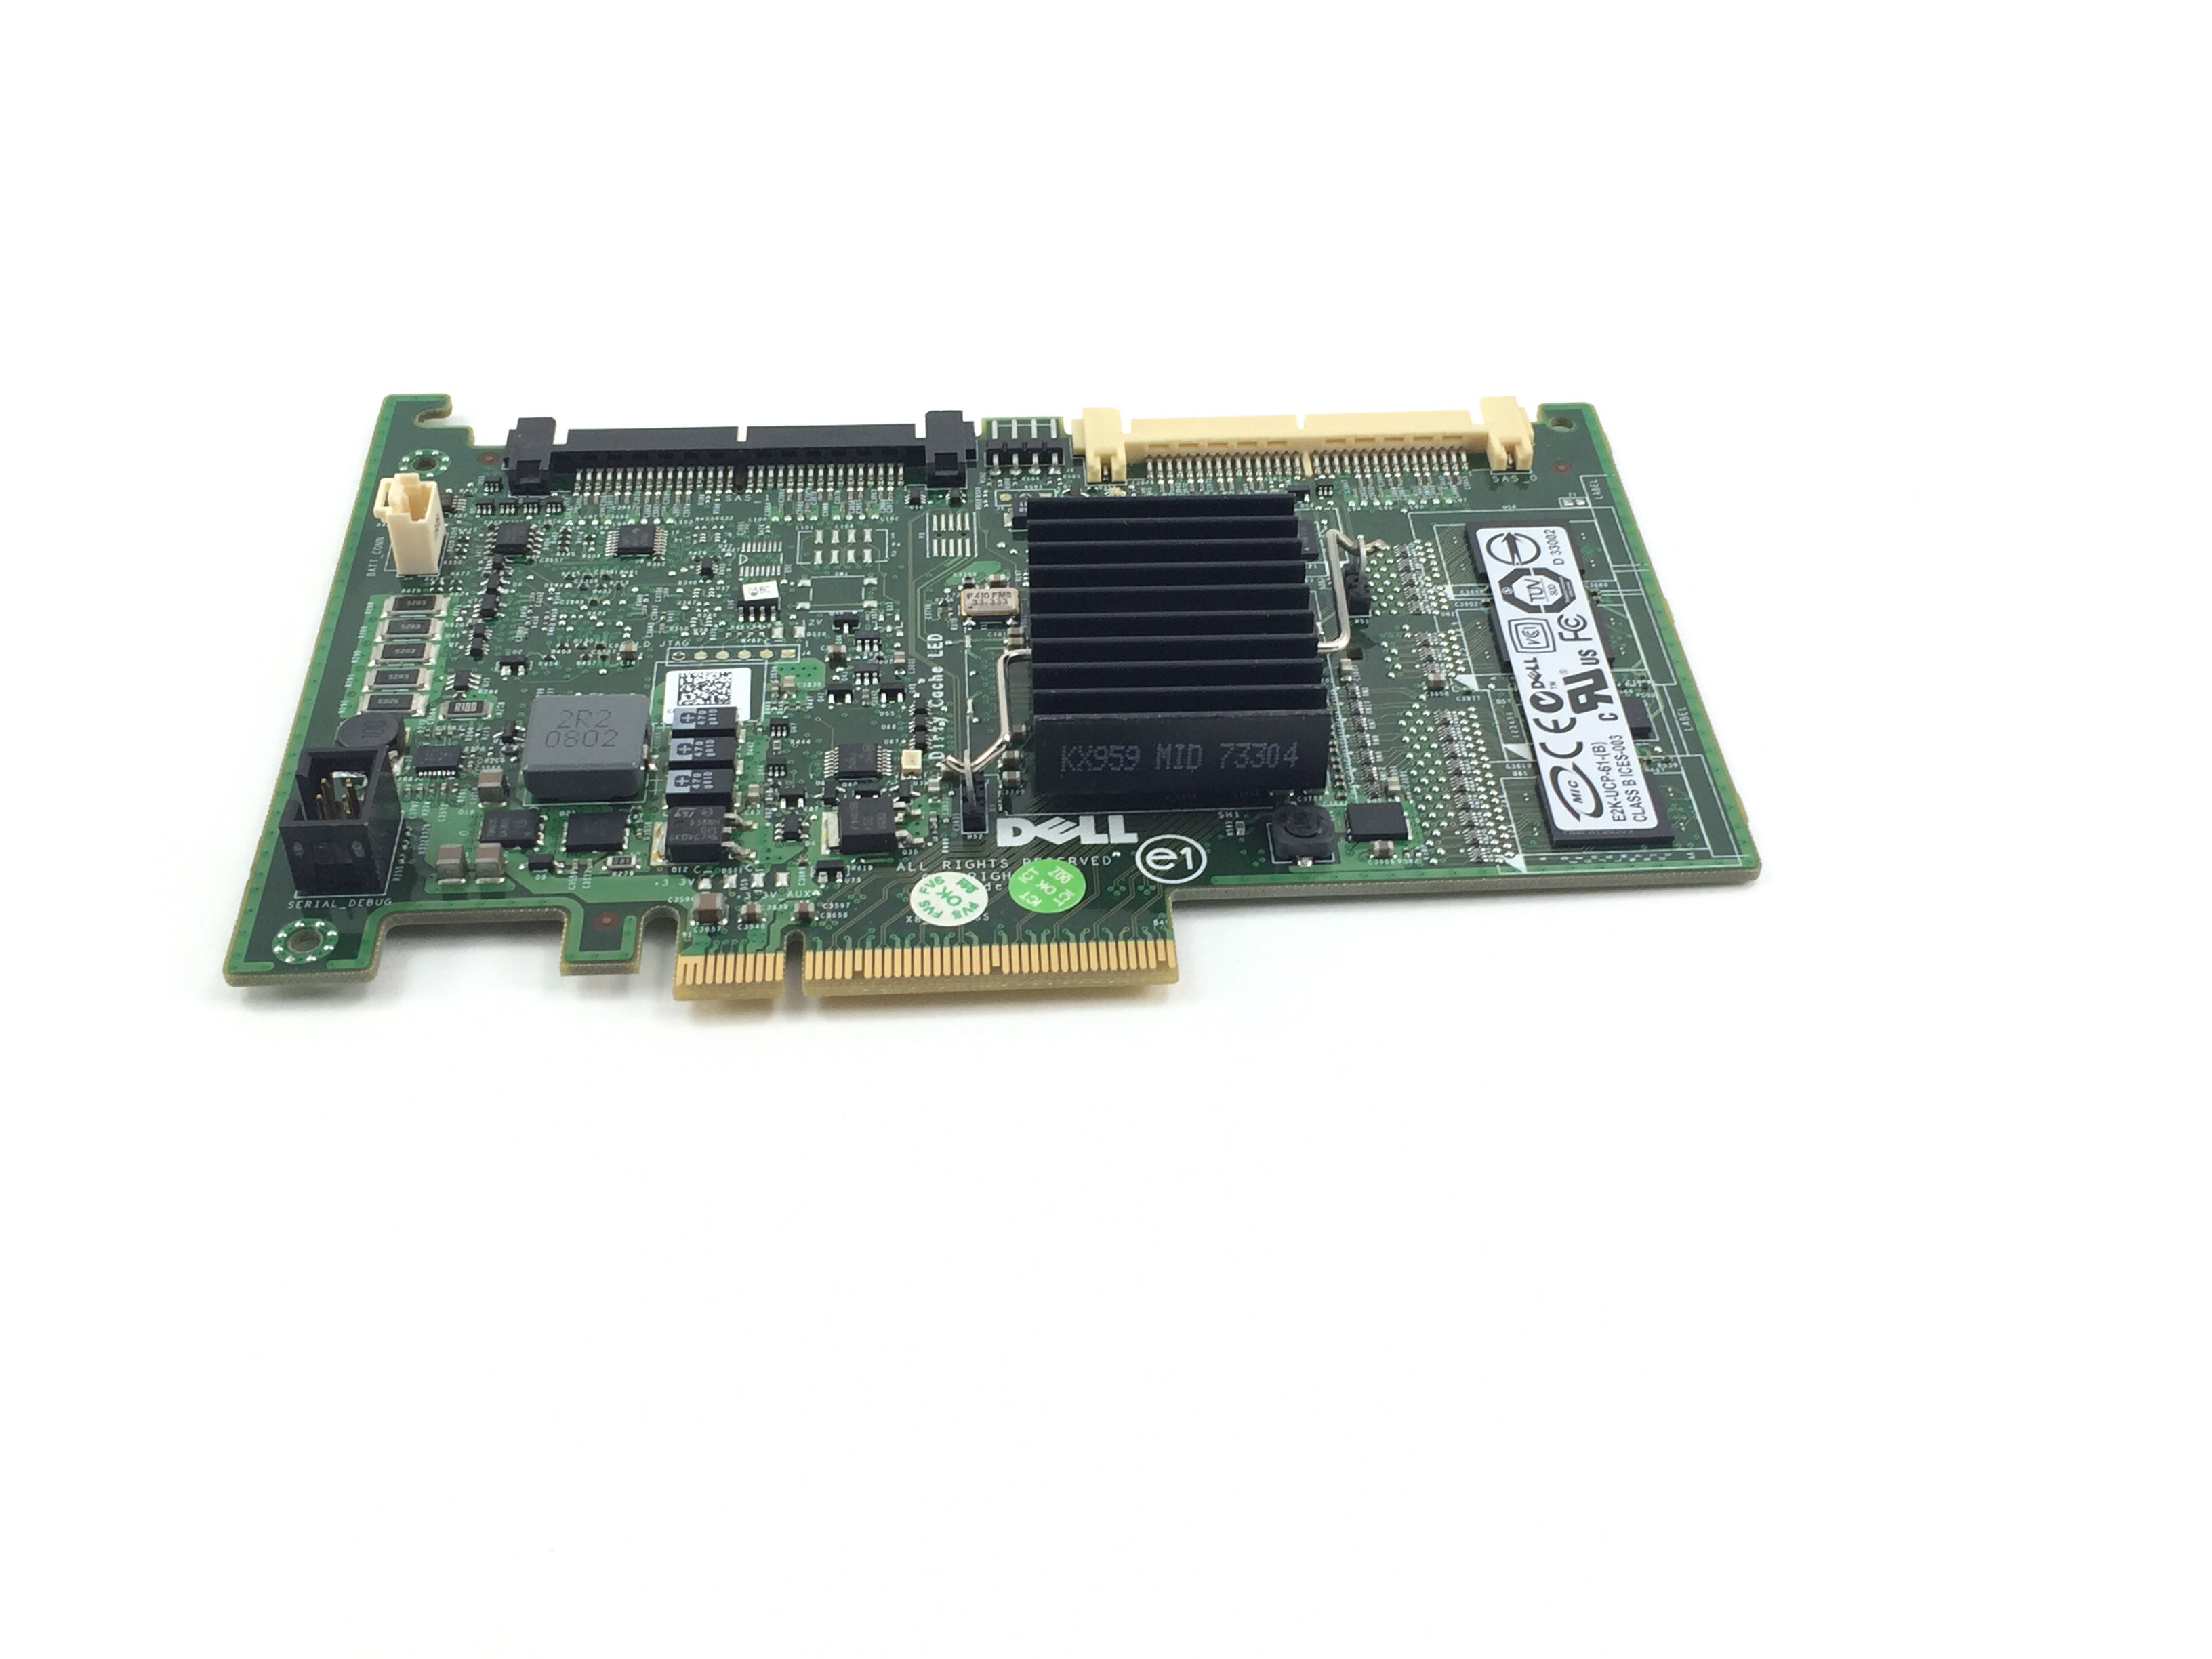 Dell PowerEdge PERC 6/I PCI-E SAS/SATA Raid Controller (DX481)